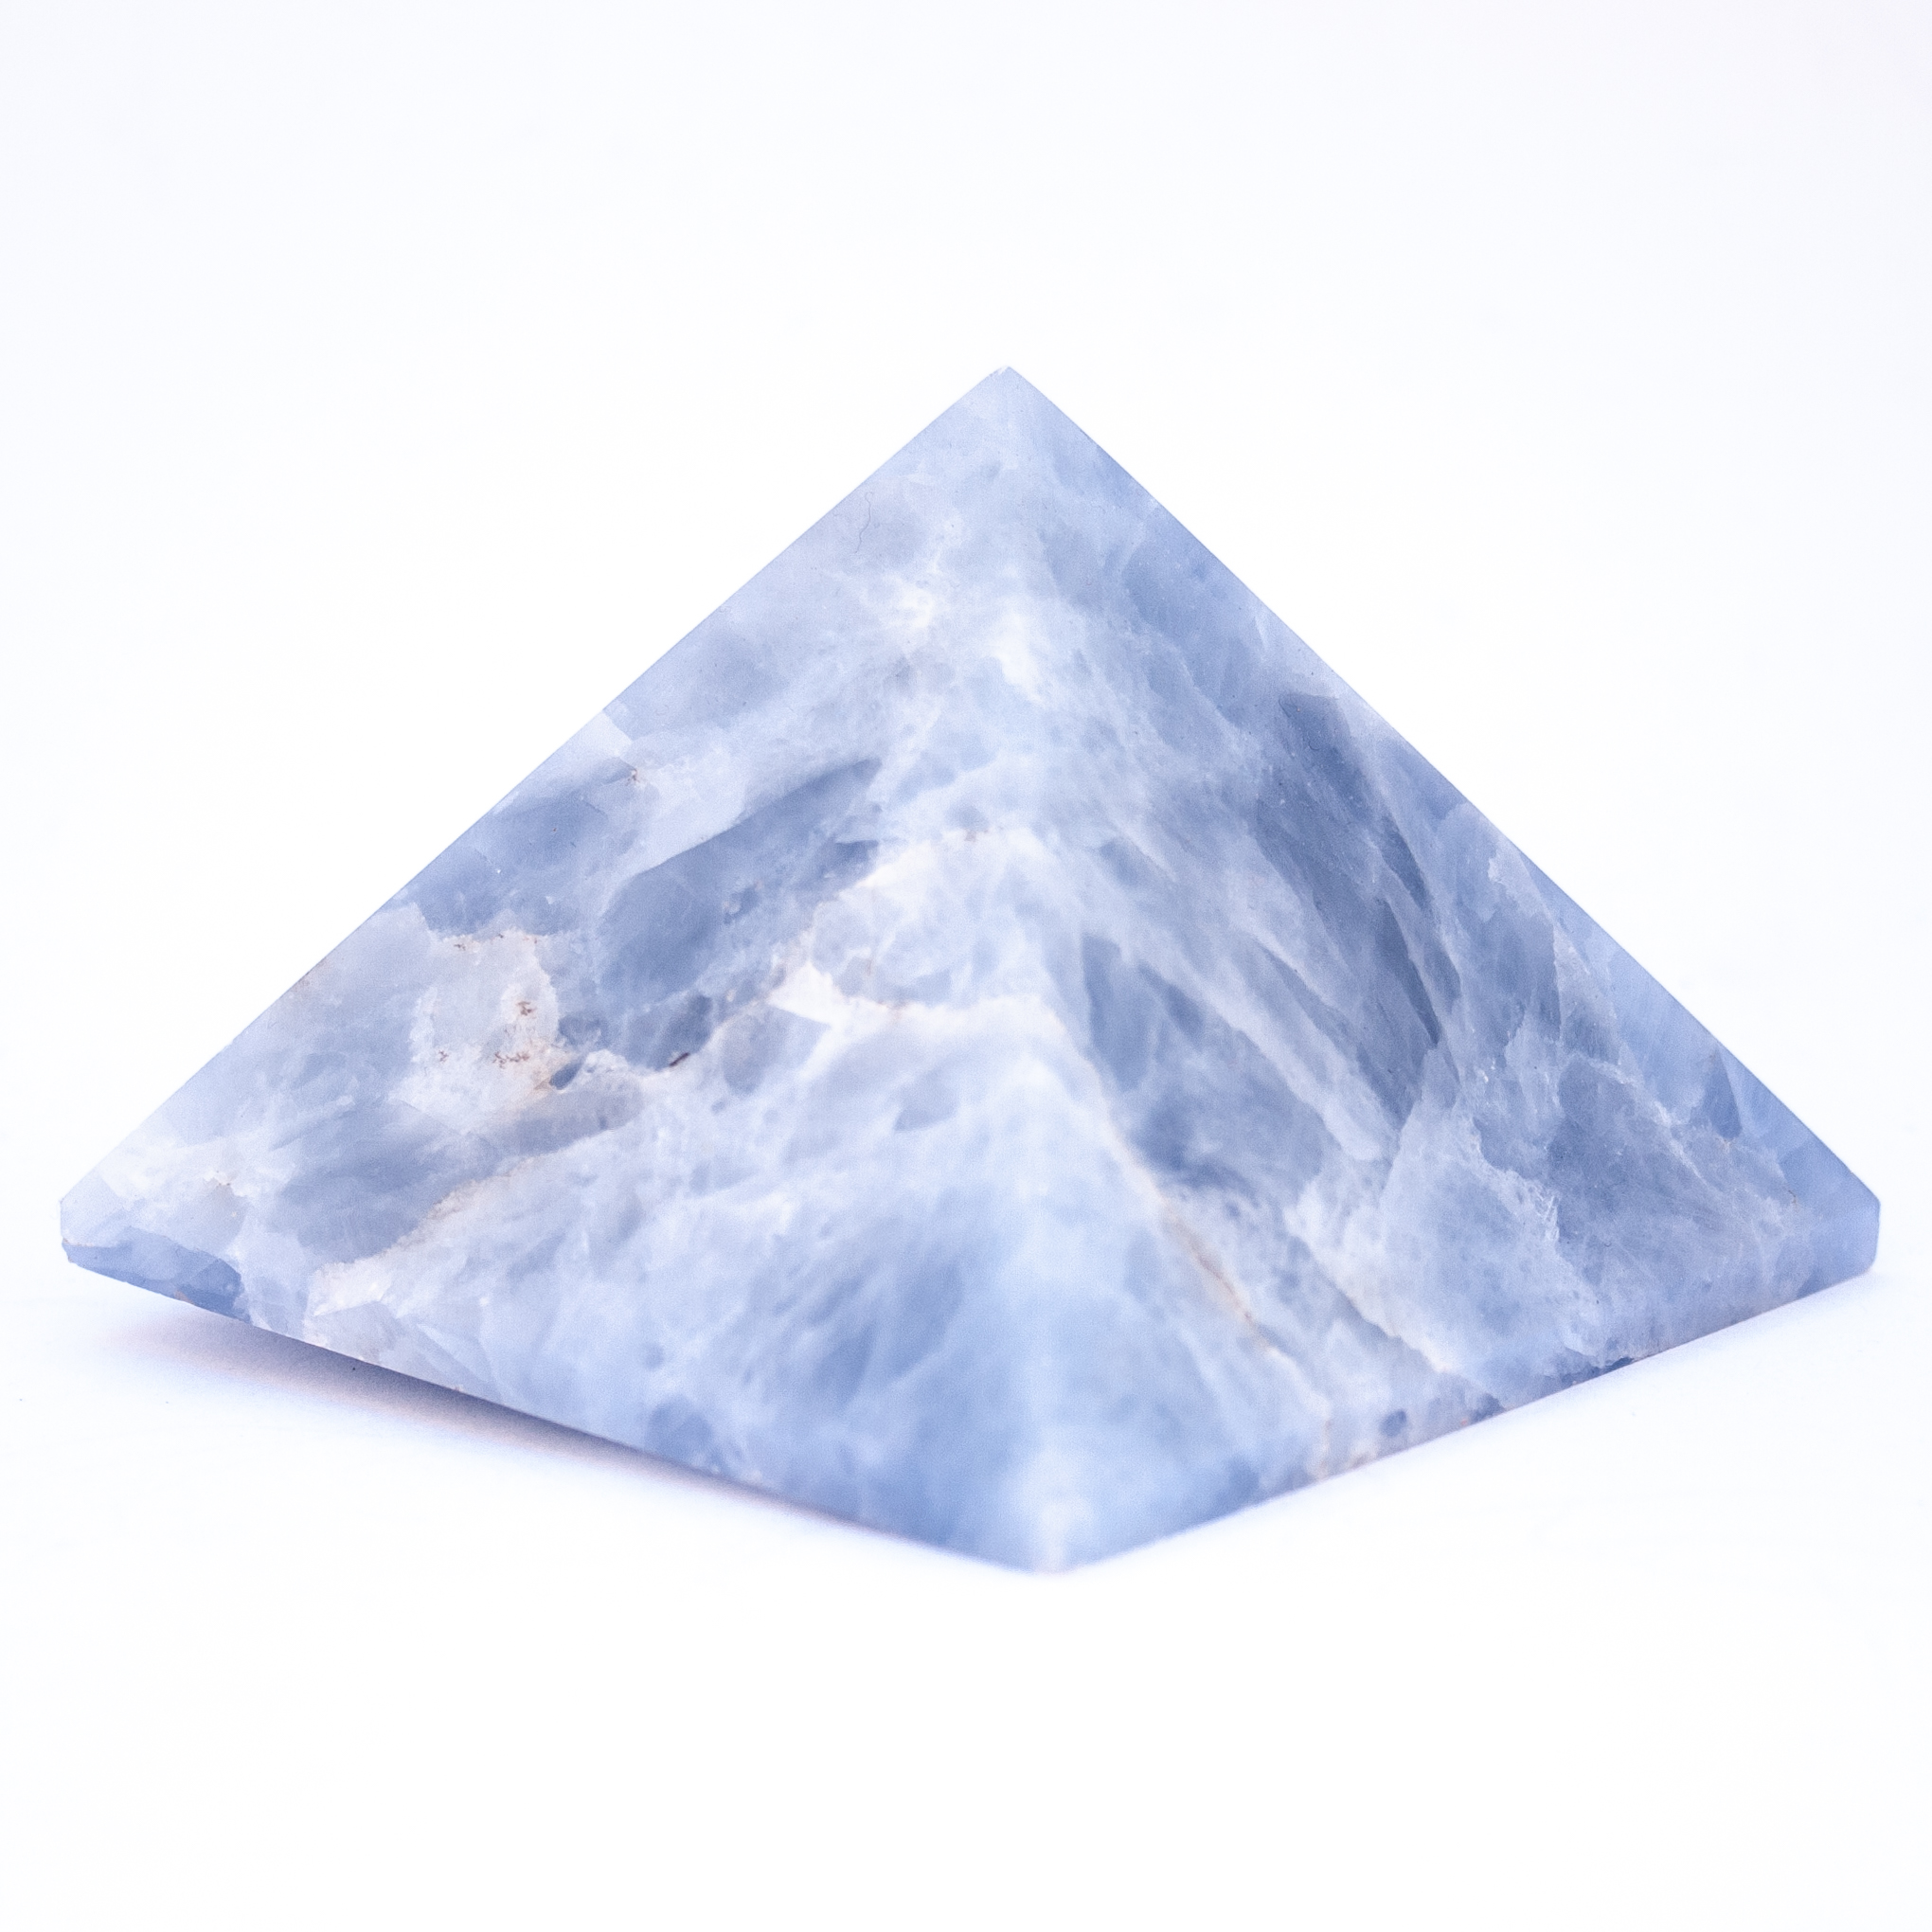 Large Blue Calcite Crystal Pyramid